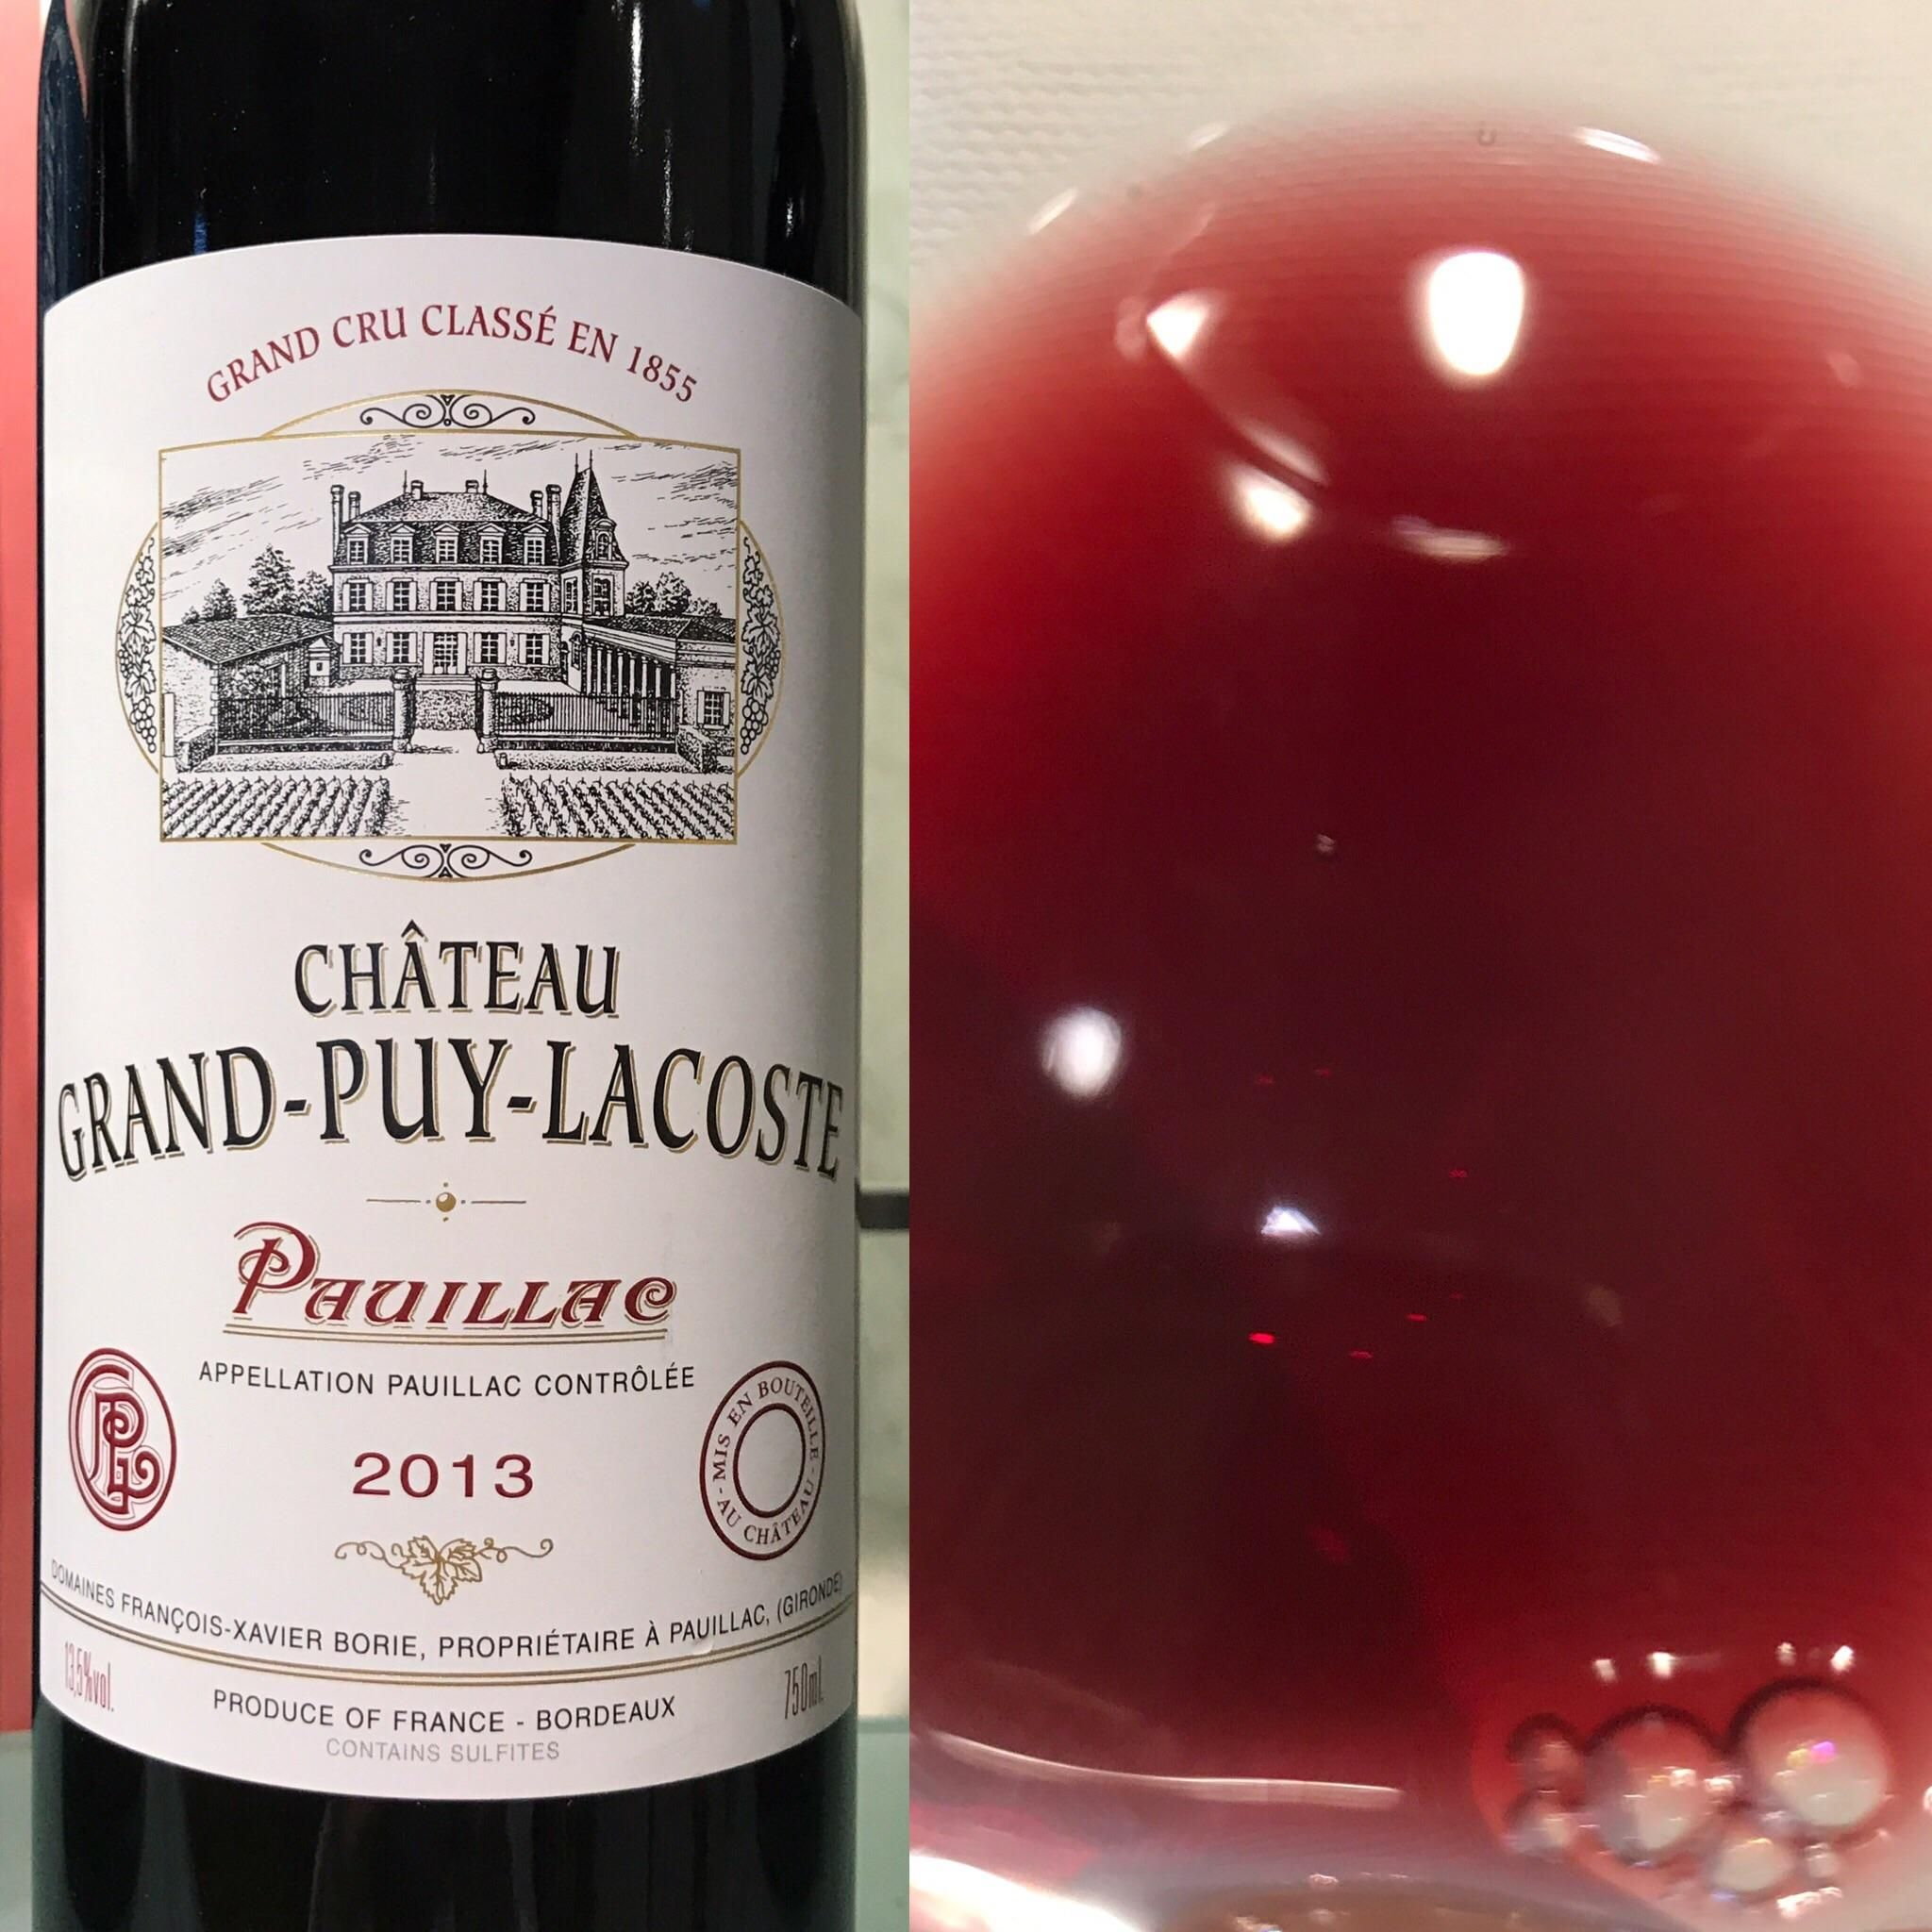 Chateau Grand Puy Lacoste Pauillac Grand Cru Classe 2013 Wine Winelover Tips Vino Winewednesday Winelovers Italy Wine Bottle Wine Lovers Cru